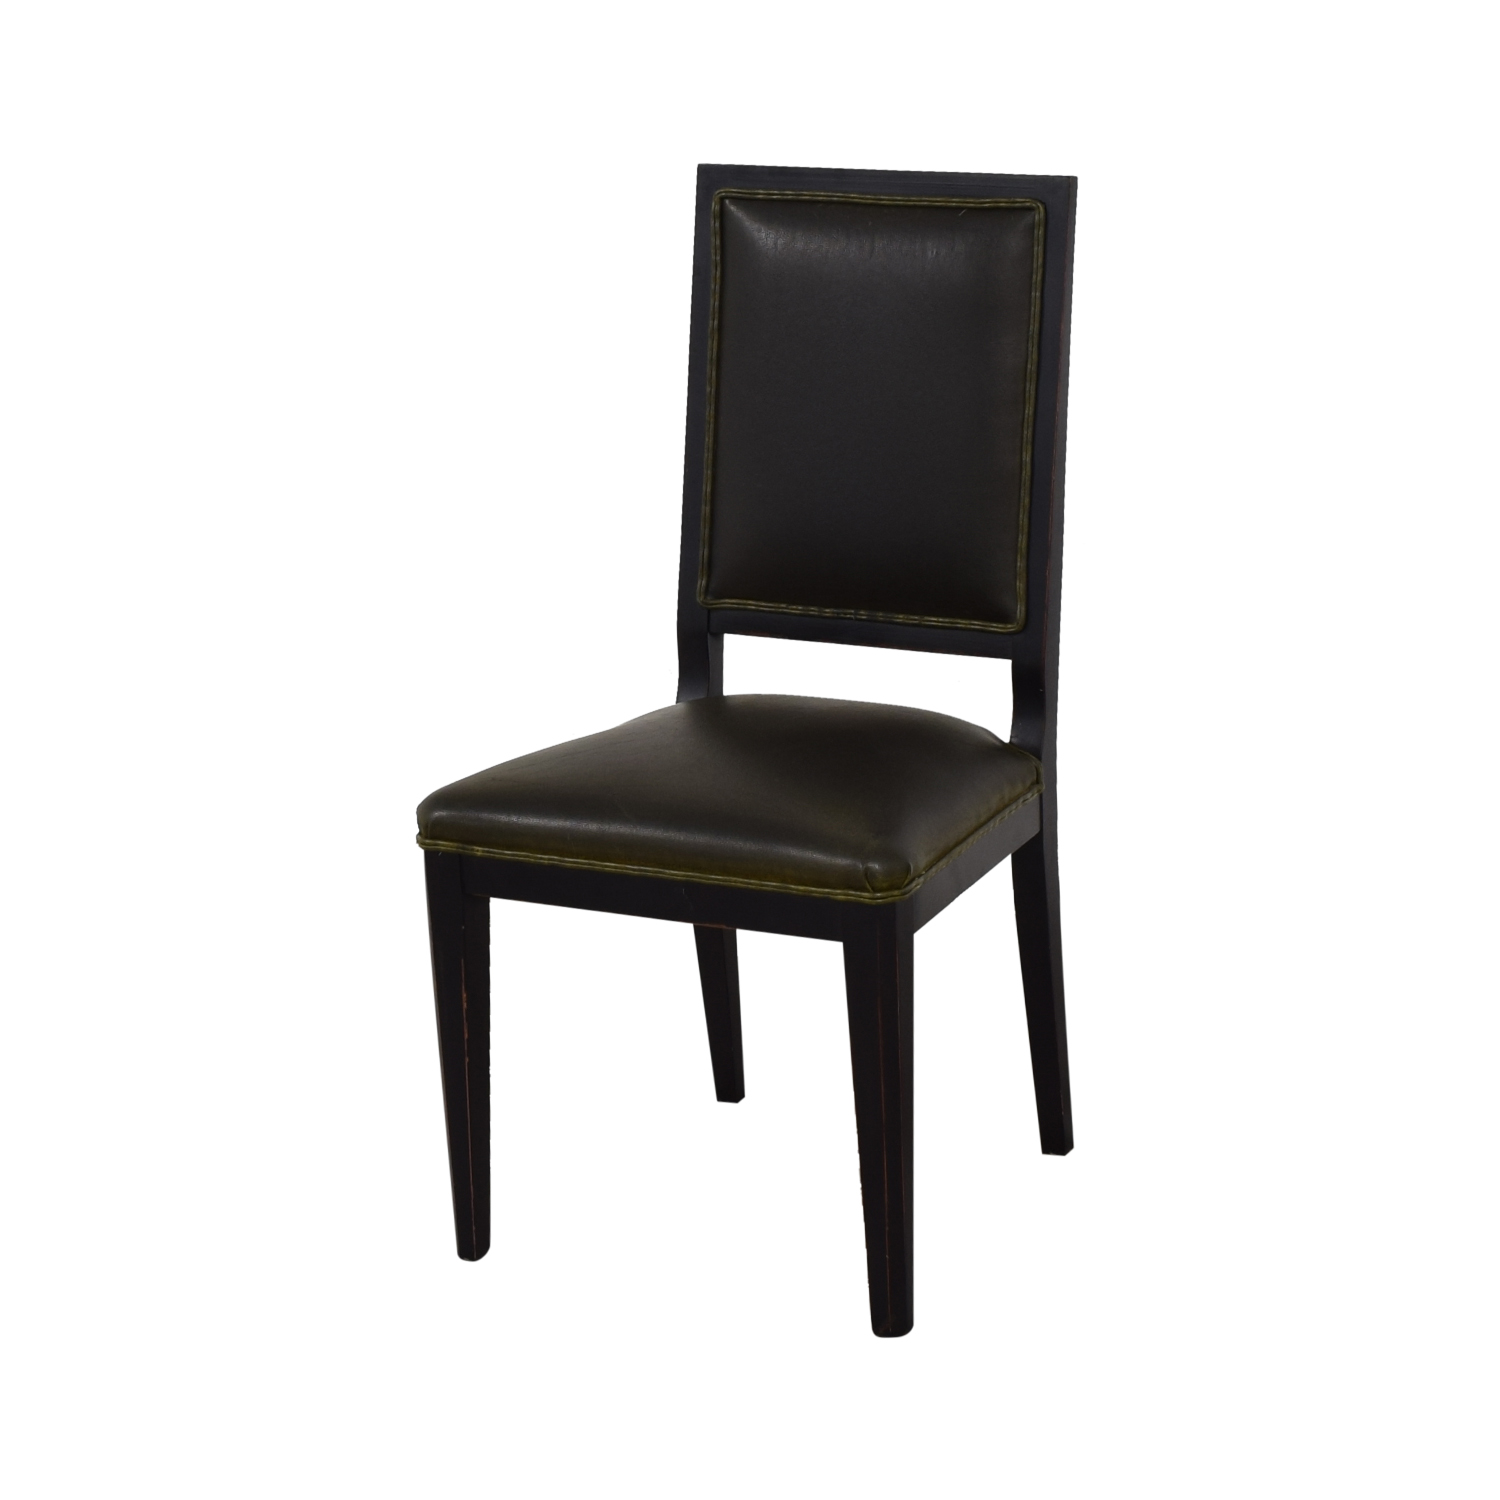 shop Buying & Design Dining Chairs Buying & Design